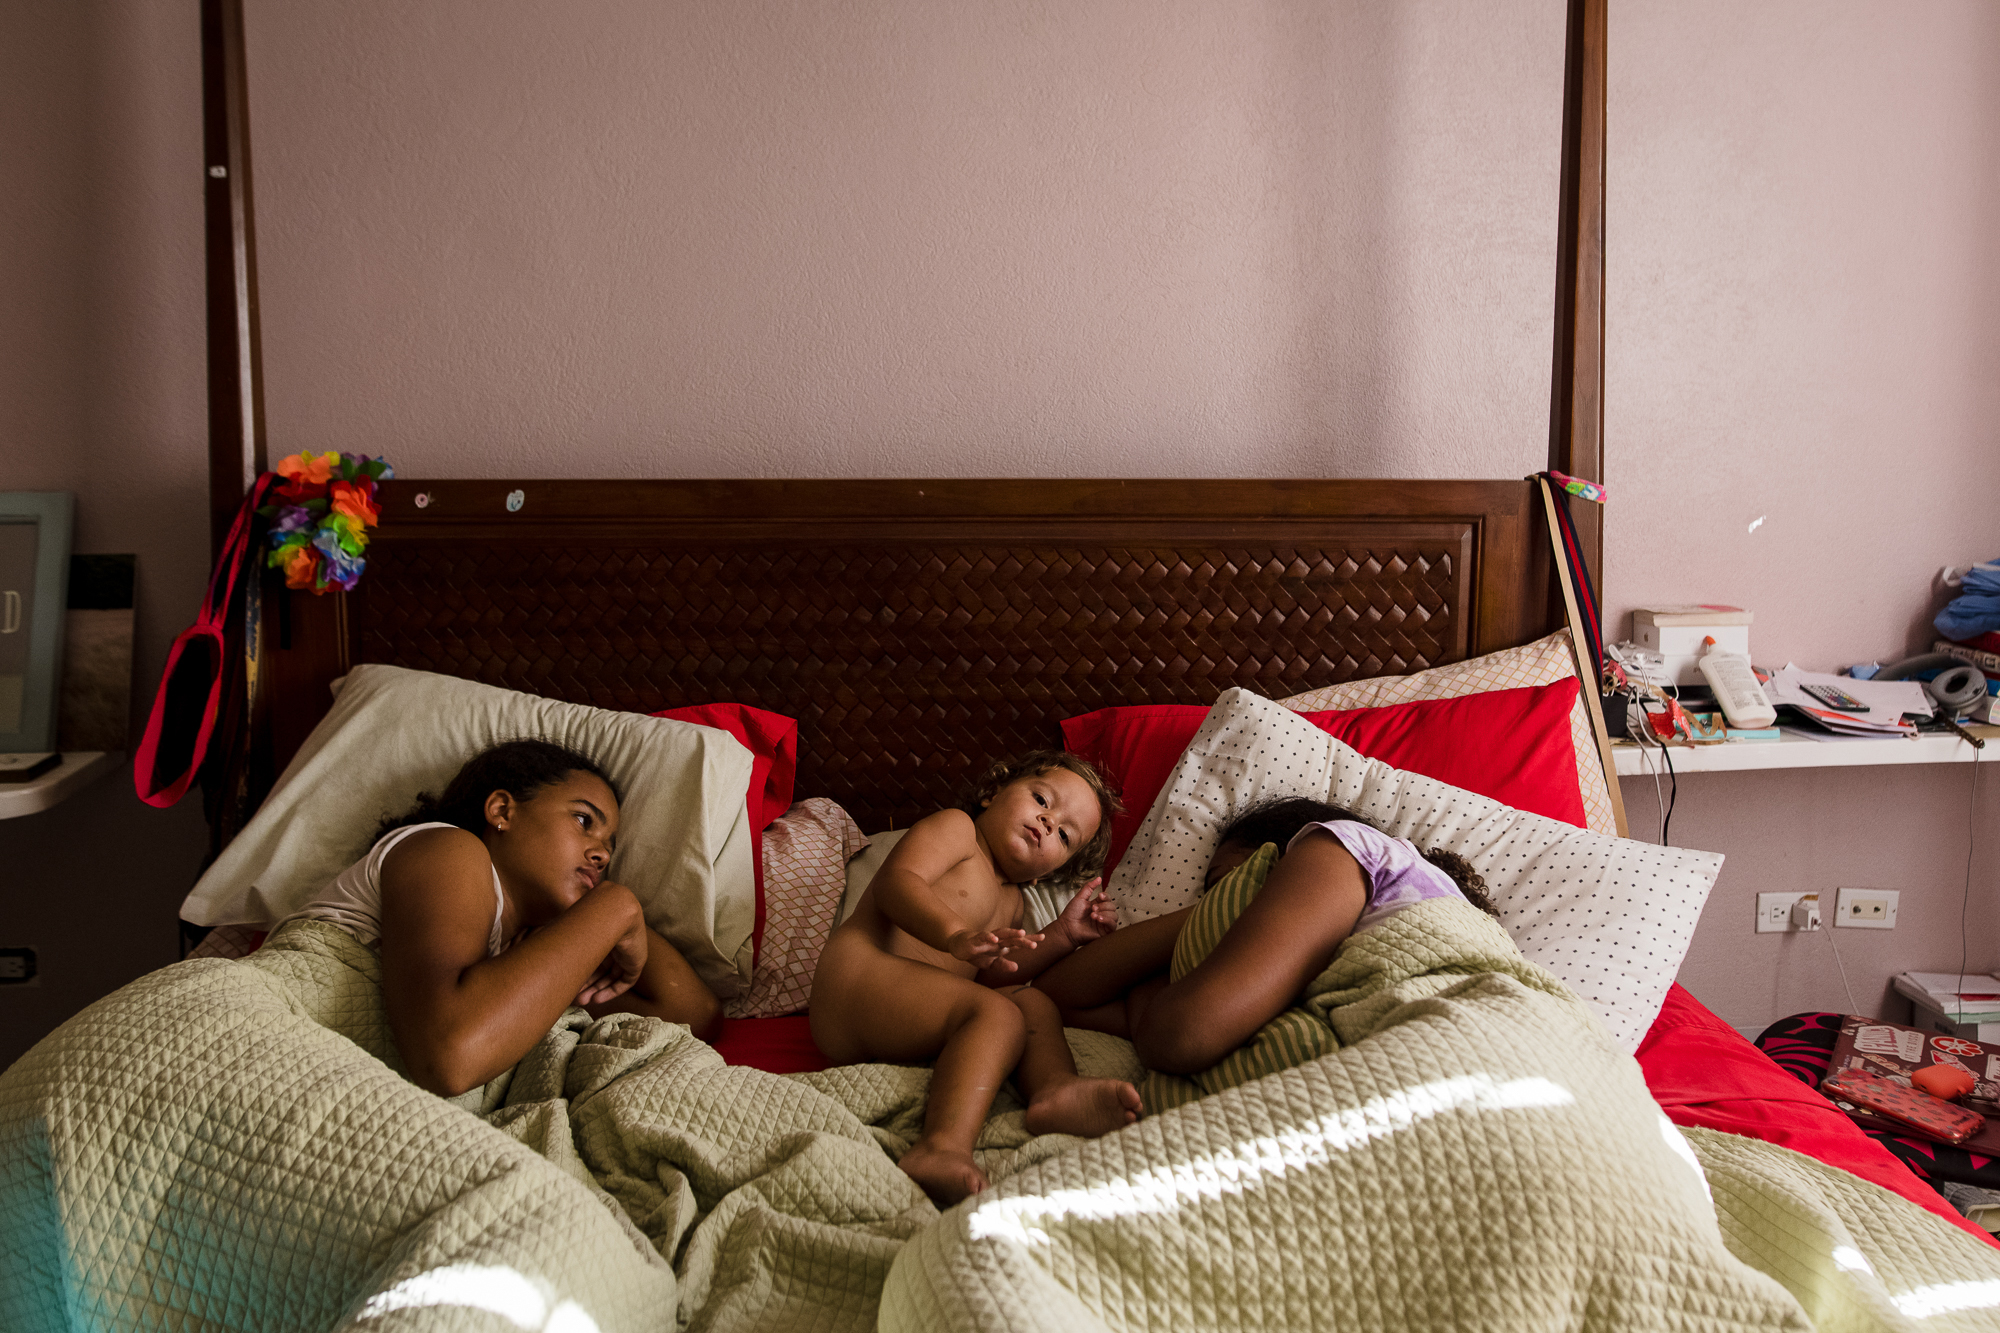 A toddler boy lays on a bed between his two older sisters who are covered in their blanket.